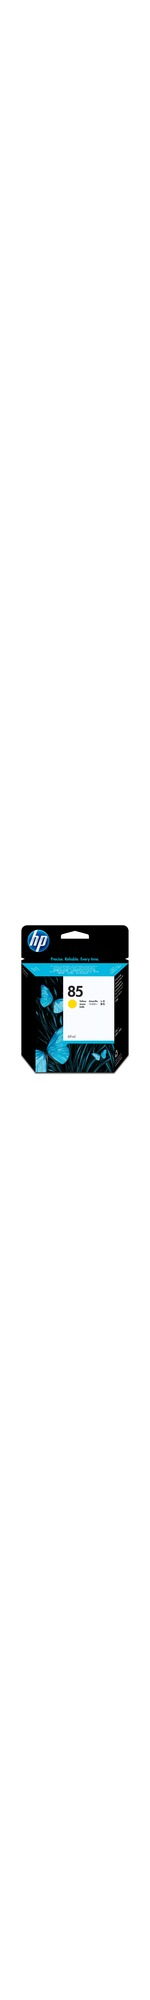 HP No. 85 Ink Cartridge - Yellow